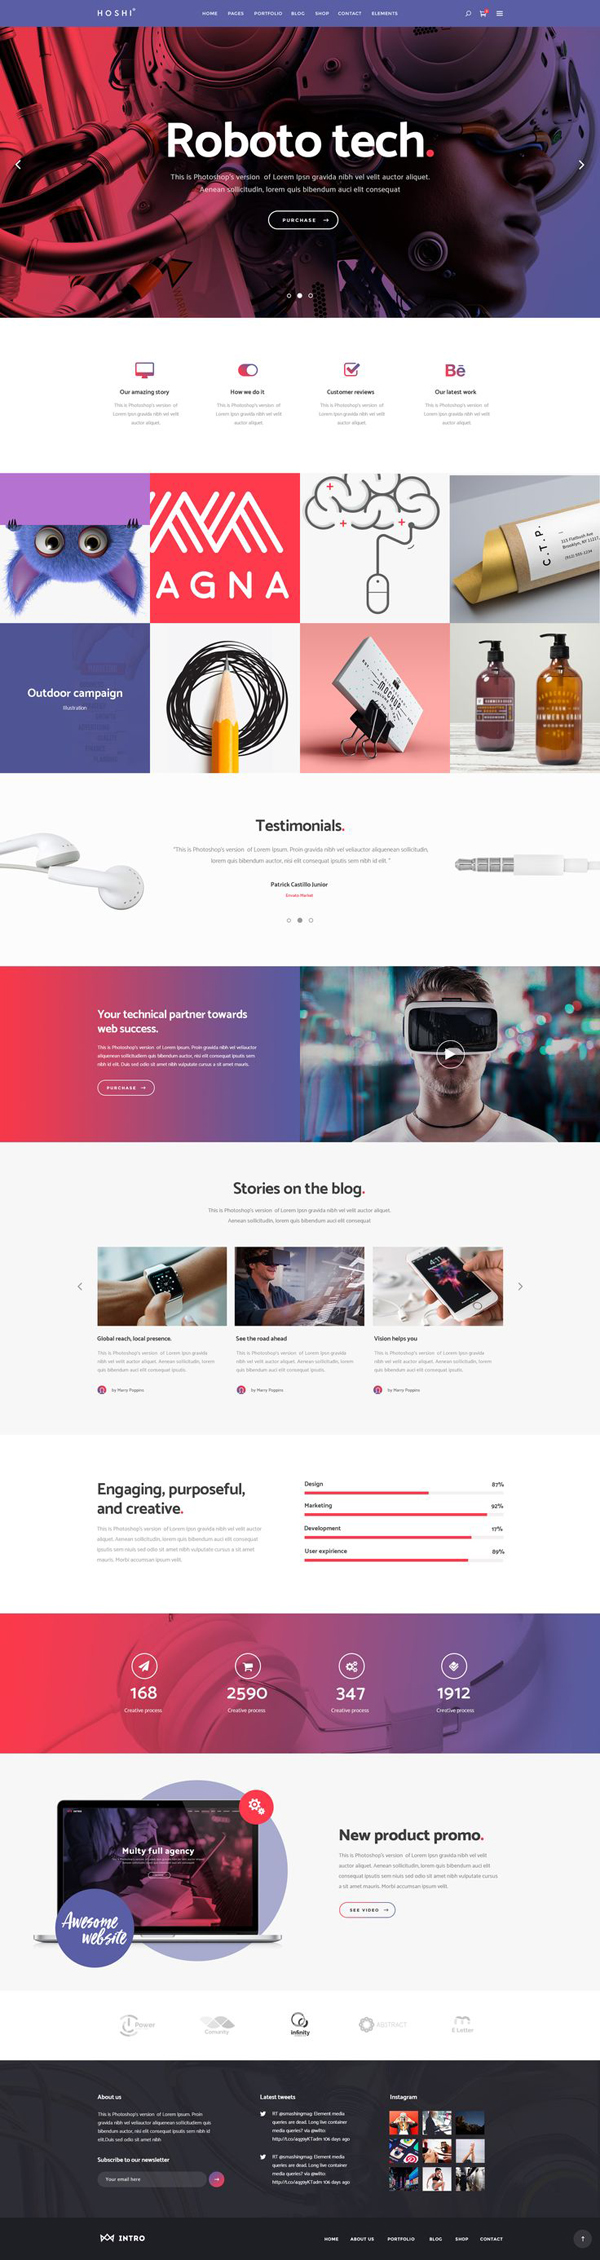 Hoshi - A Modern Theme for Digital Agencies and Freelancers